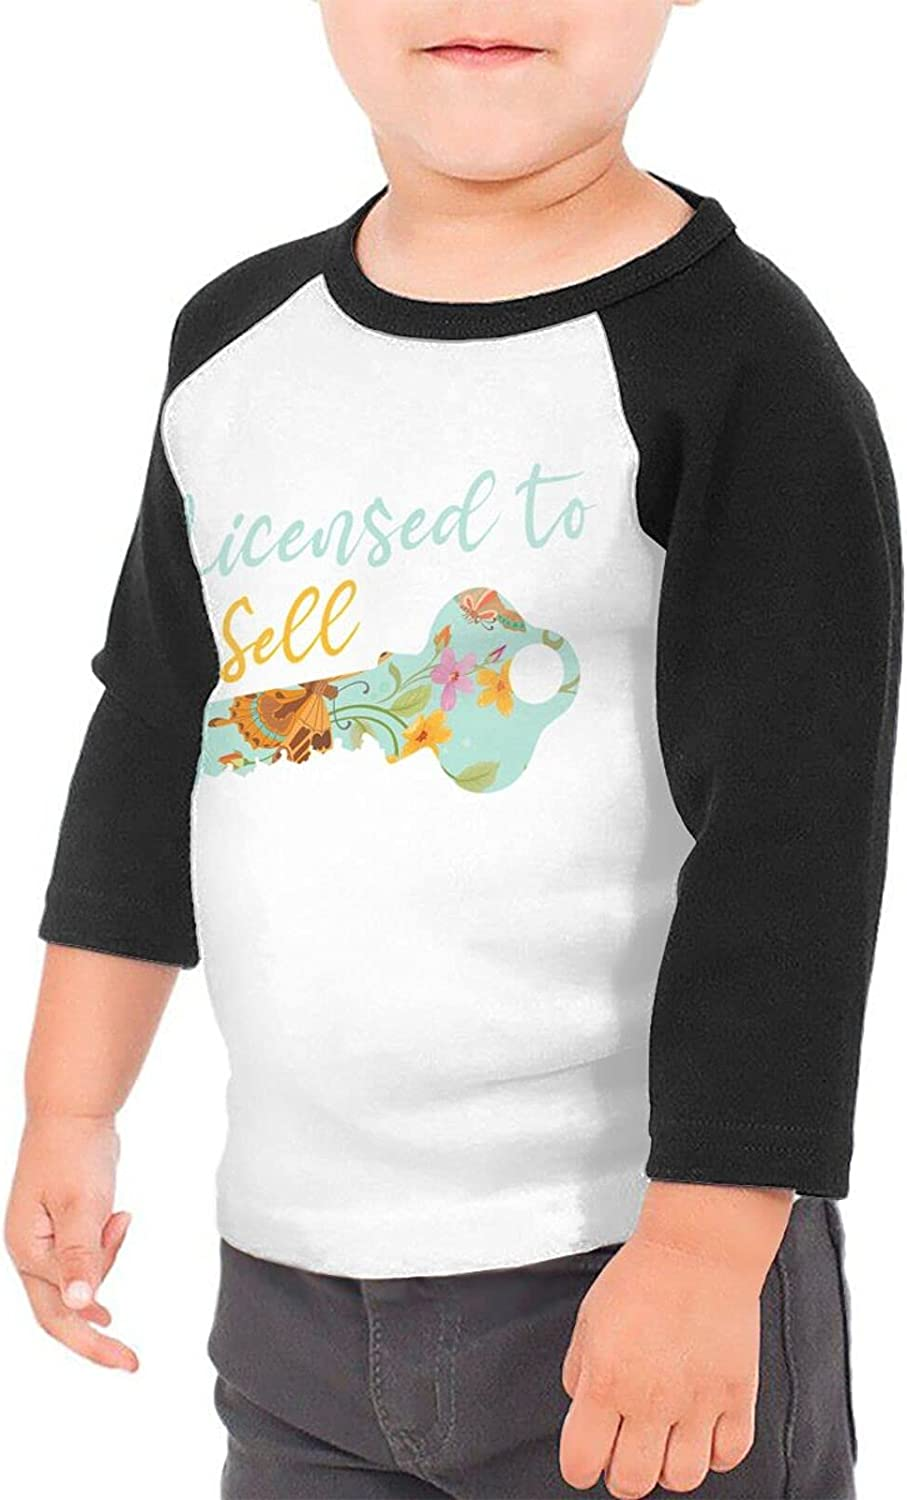 Licensed to Sell Real Estate Realty T-Shirts Novelty for Youth Tees with Cool Designs